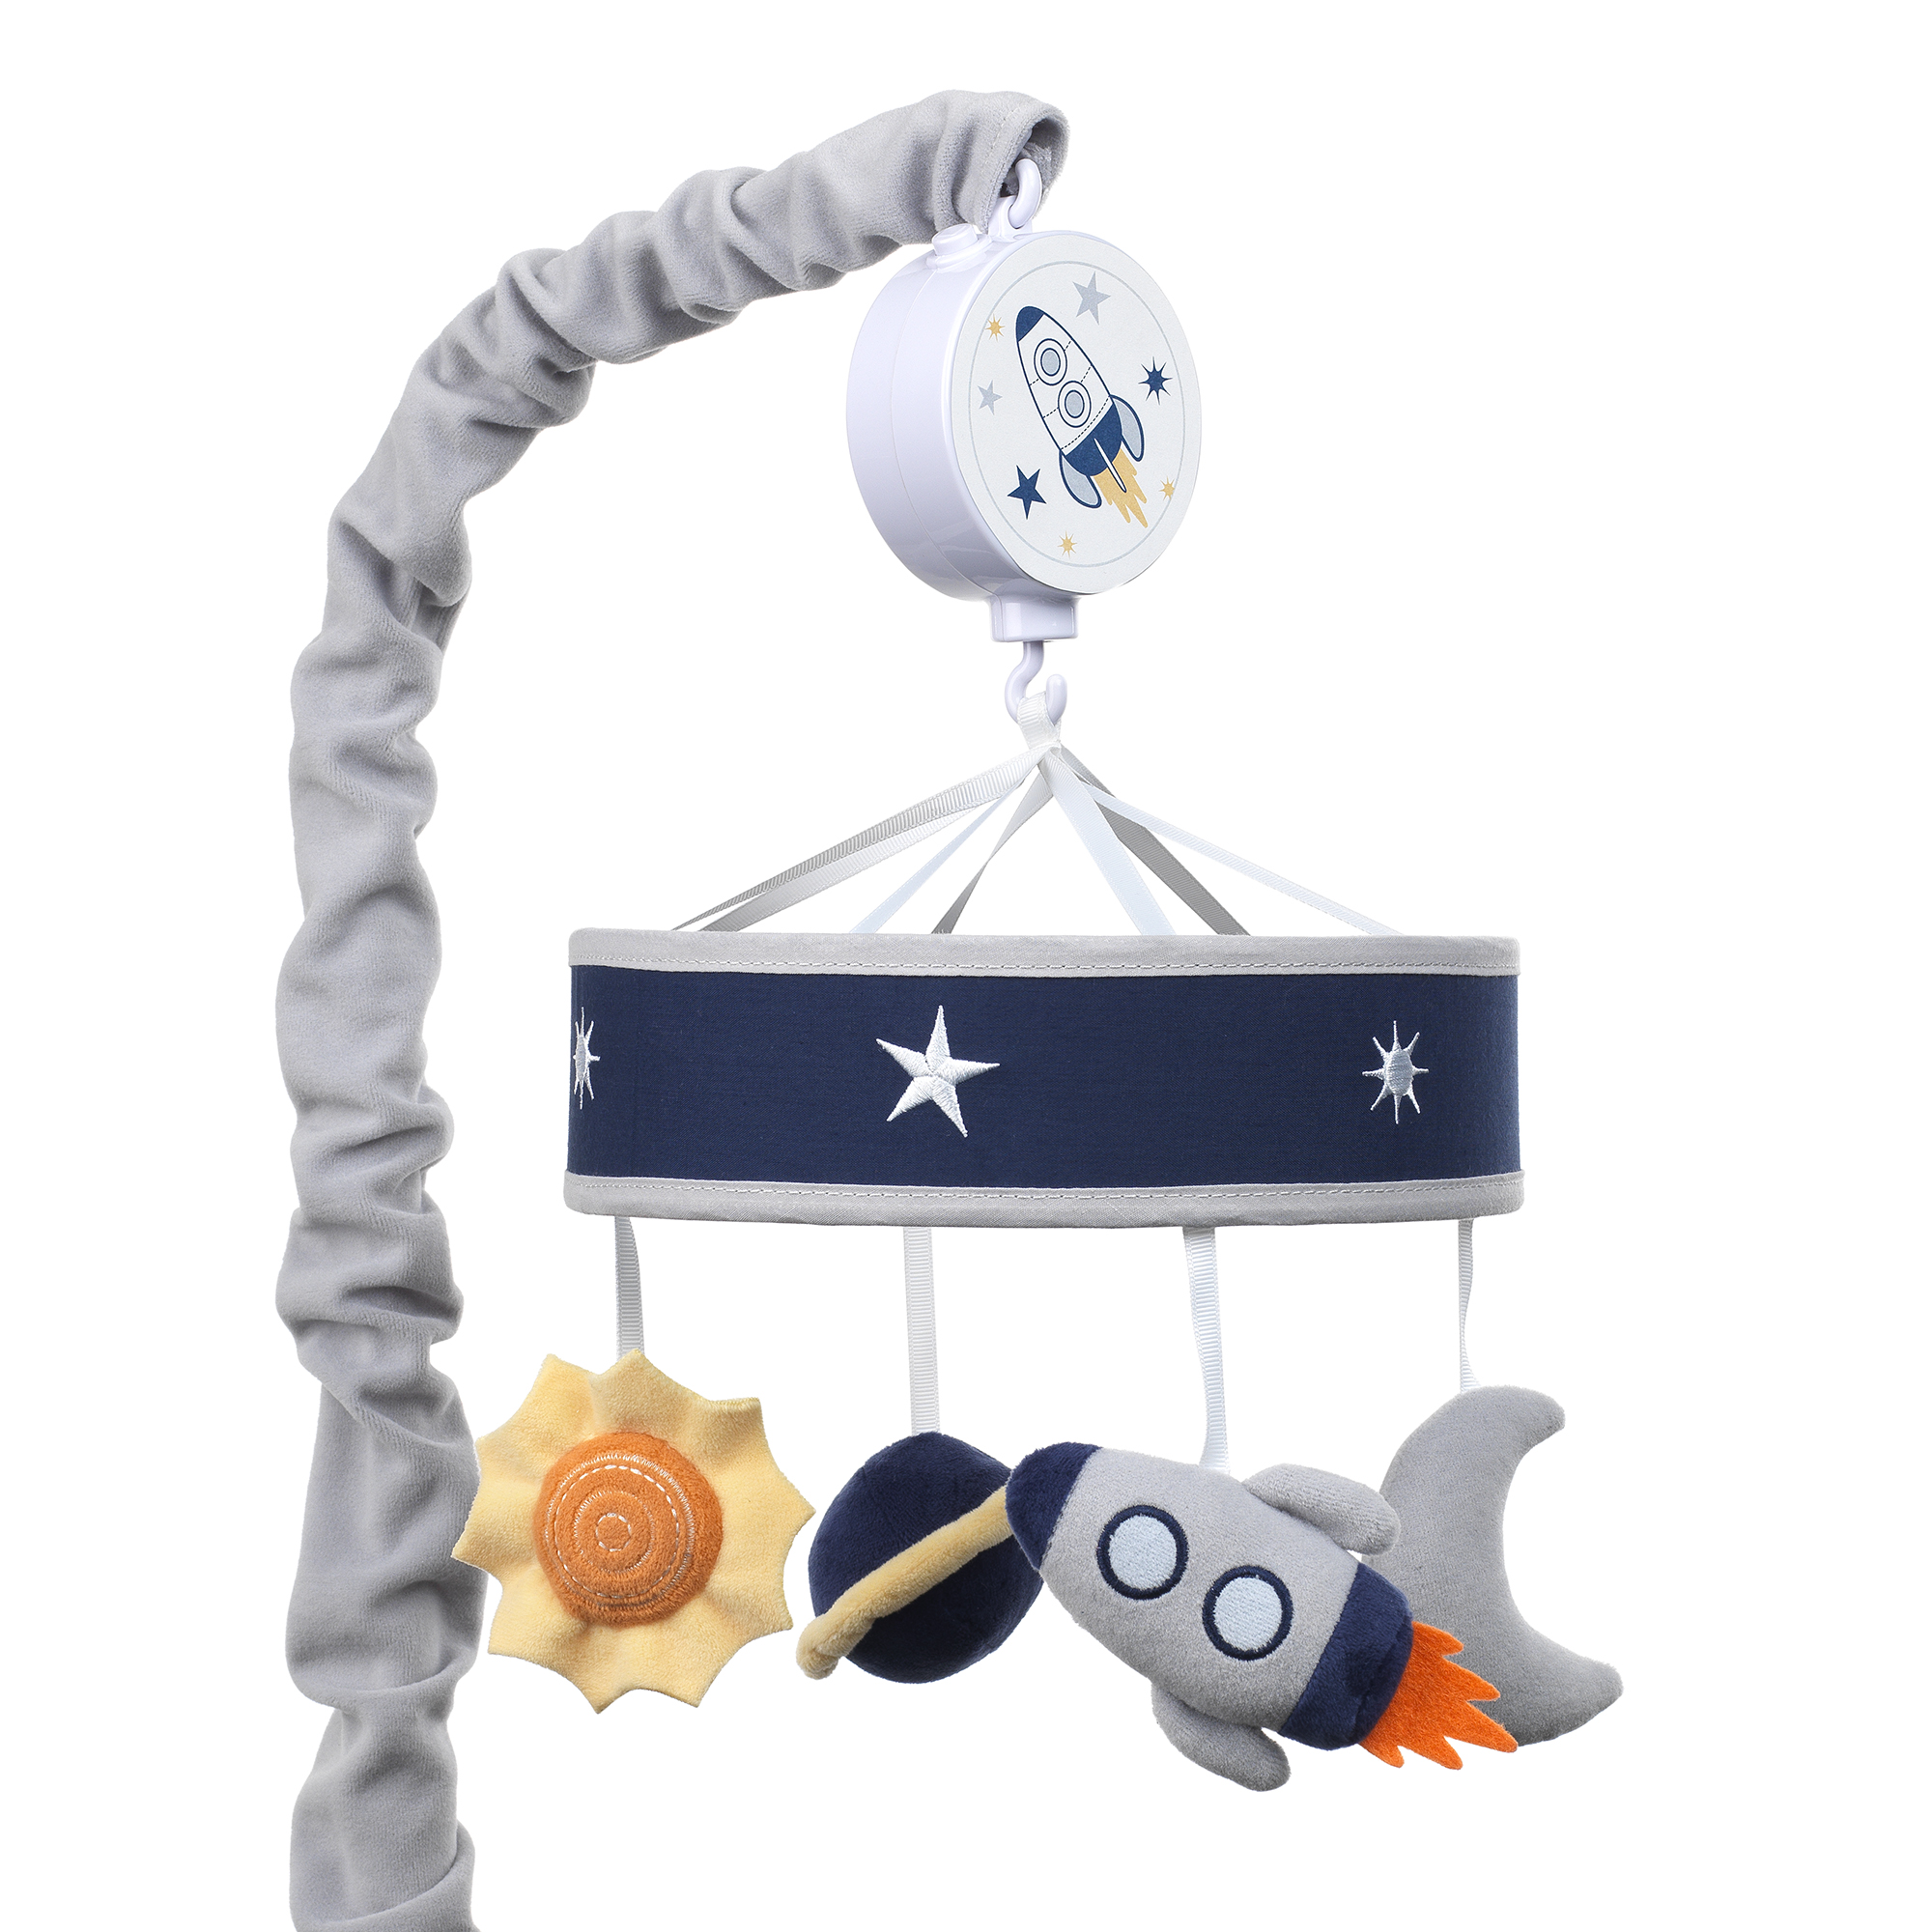 Lambs & Ivy Milky Way Musical Baby Crib Mobile Blue, Gray, Modern, Celestial by Lambs %26 Ivy